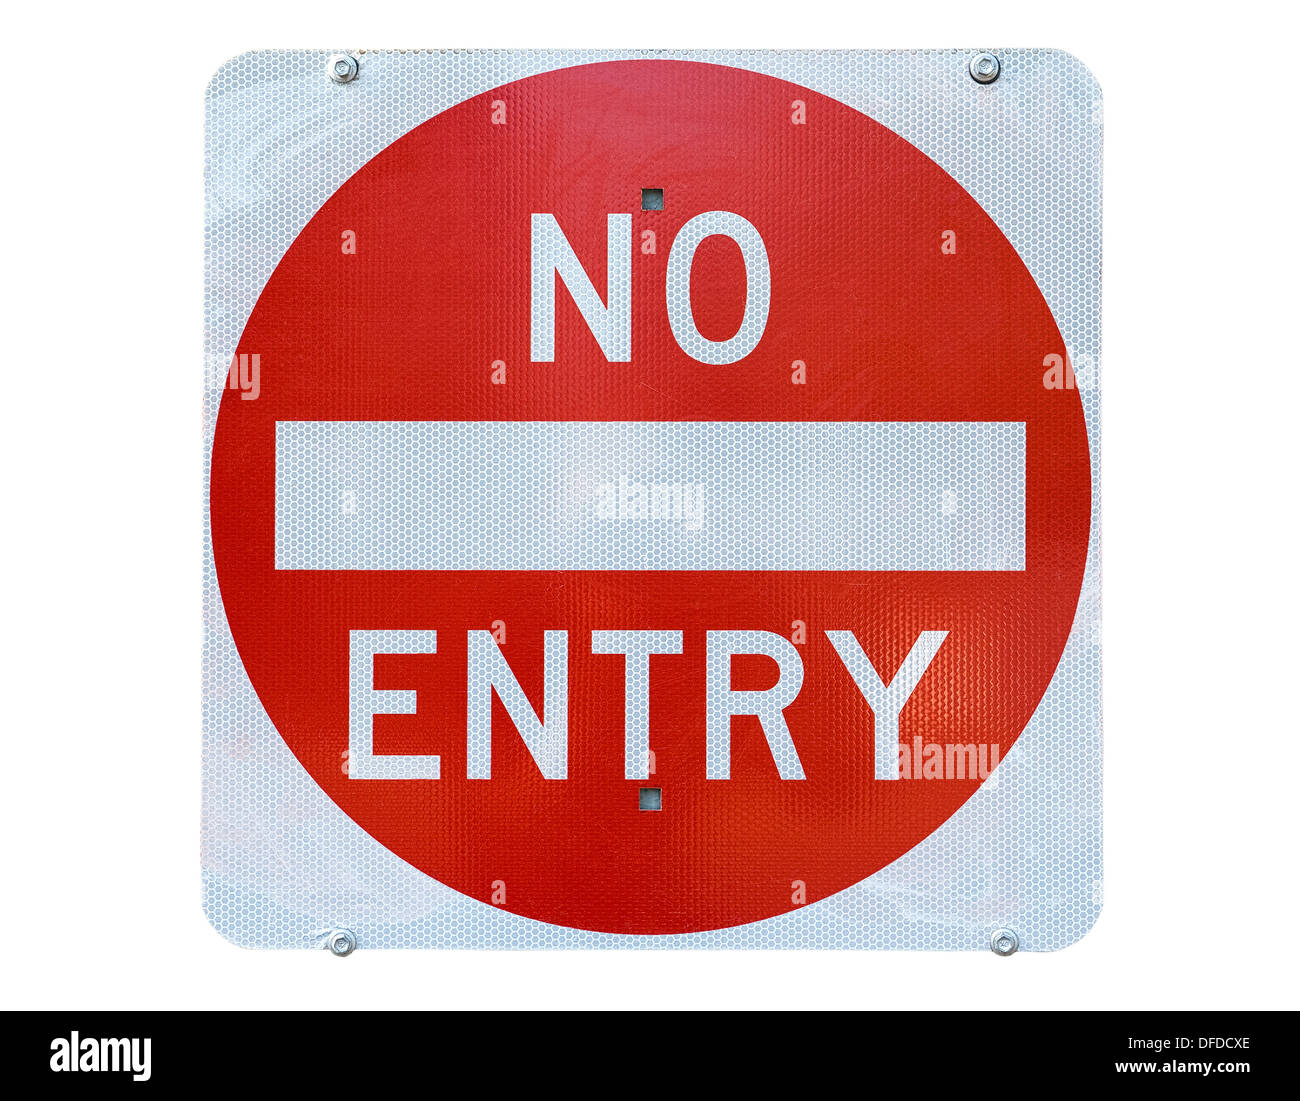 old no entry traffic sign on white background - Stock Image